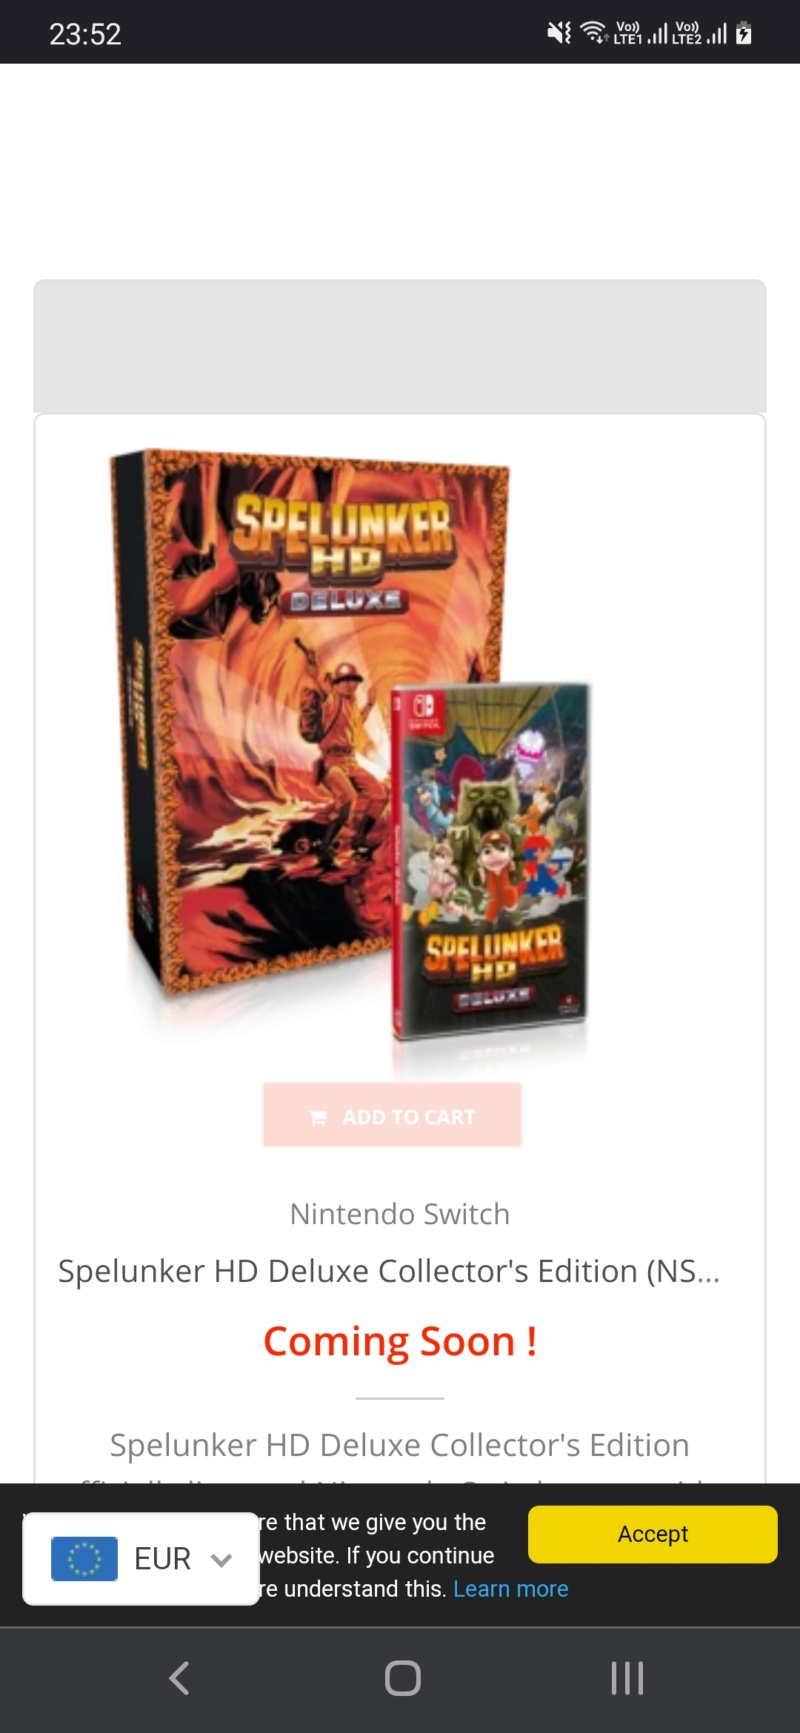 Les sorties Strictly Limited Games Screen33